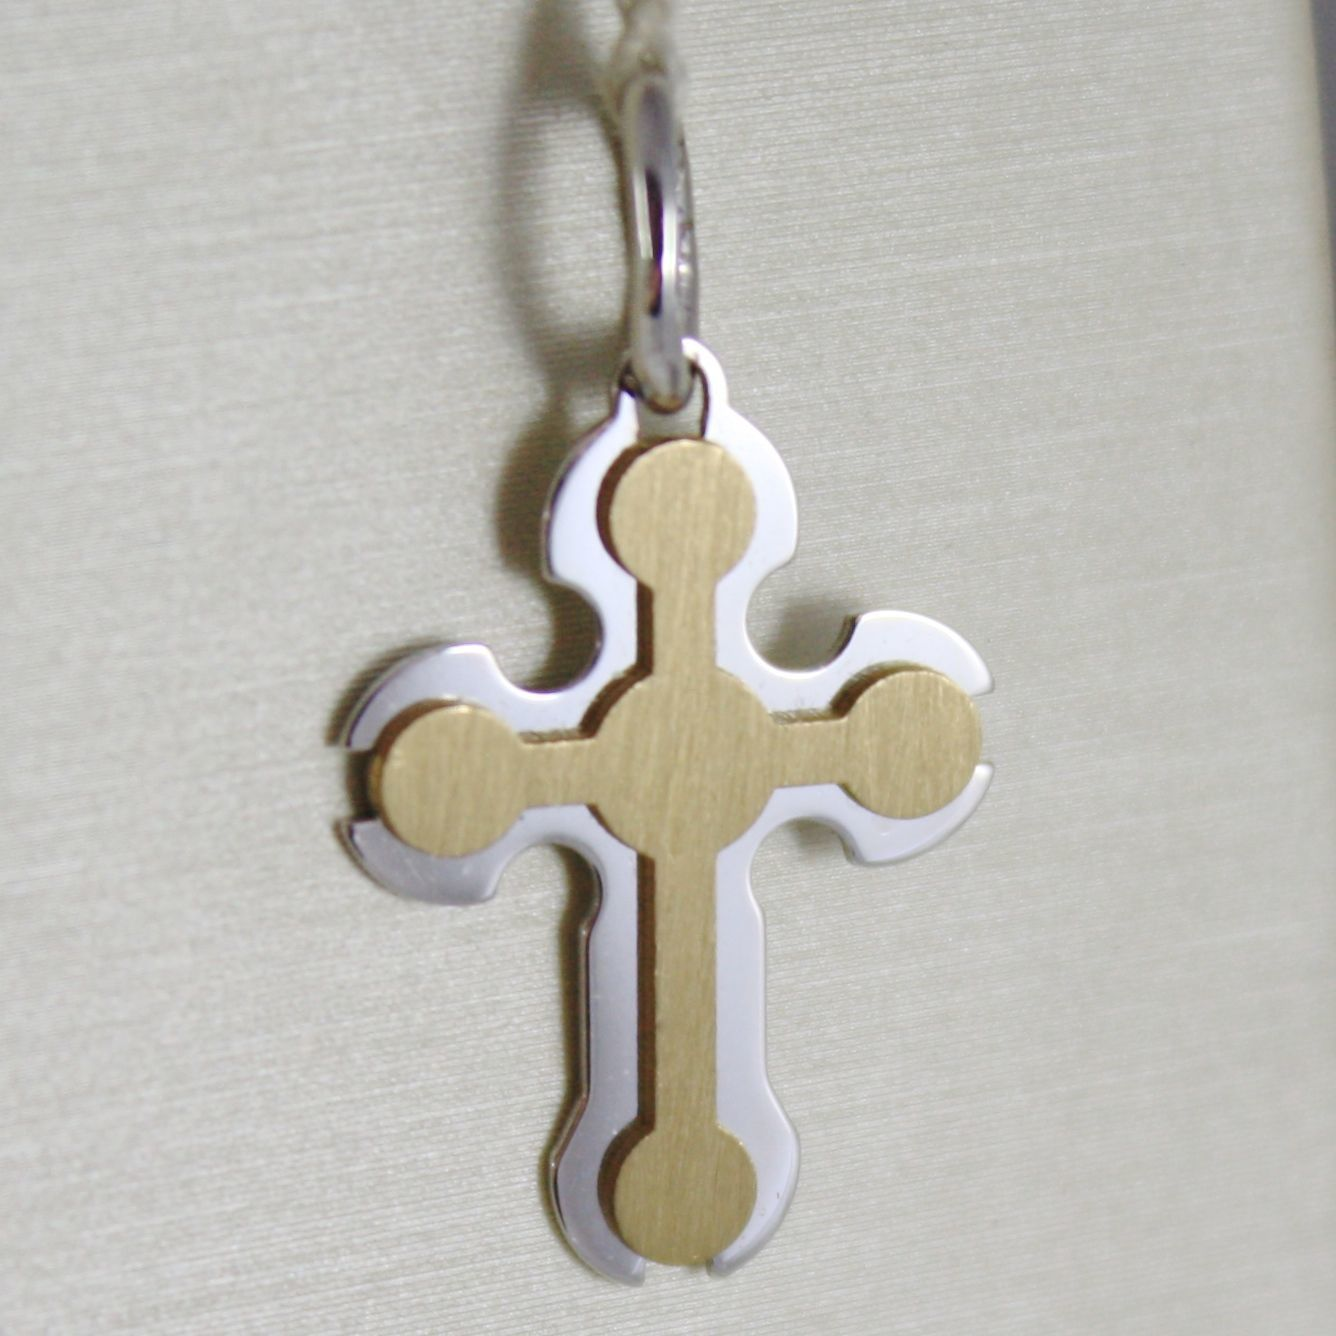 CROSS PENDANT YELLOW GOLD WHITE 750 18K, DOUBLE LAYER SATIN, GLOSSY, ITALY